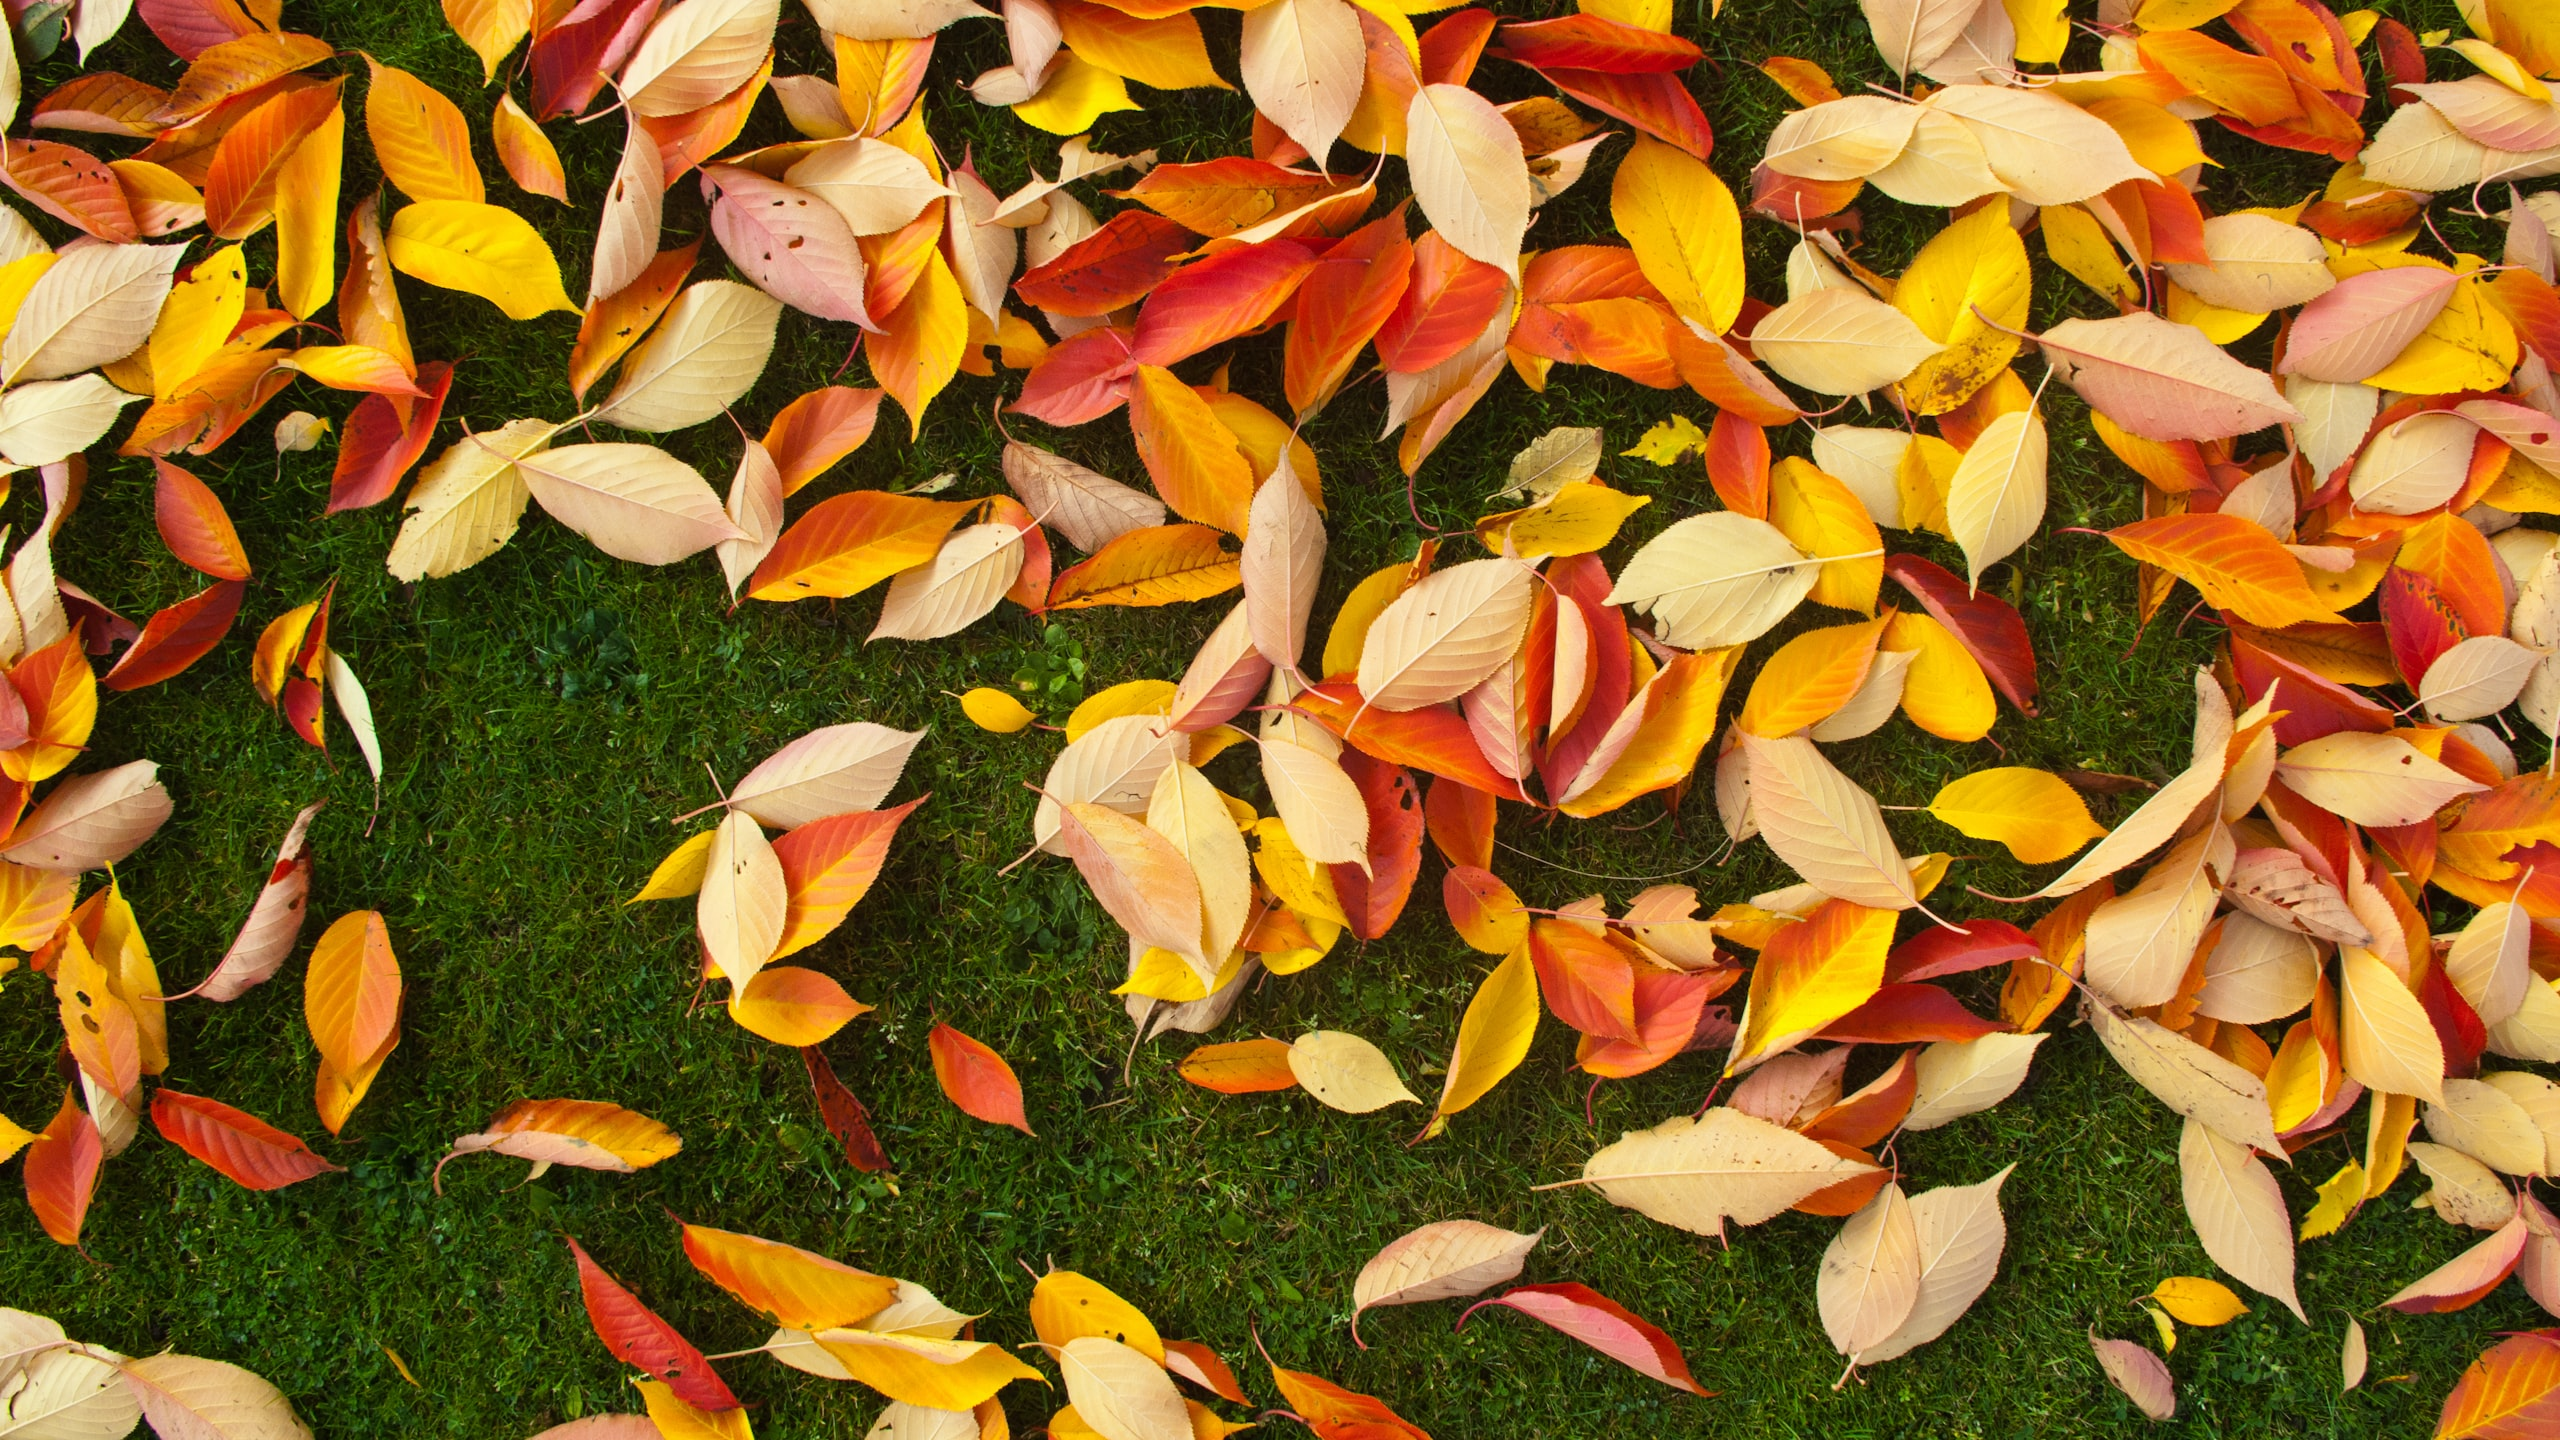 dried leaves on grass